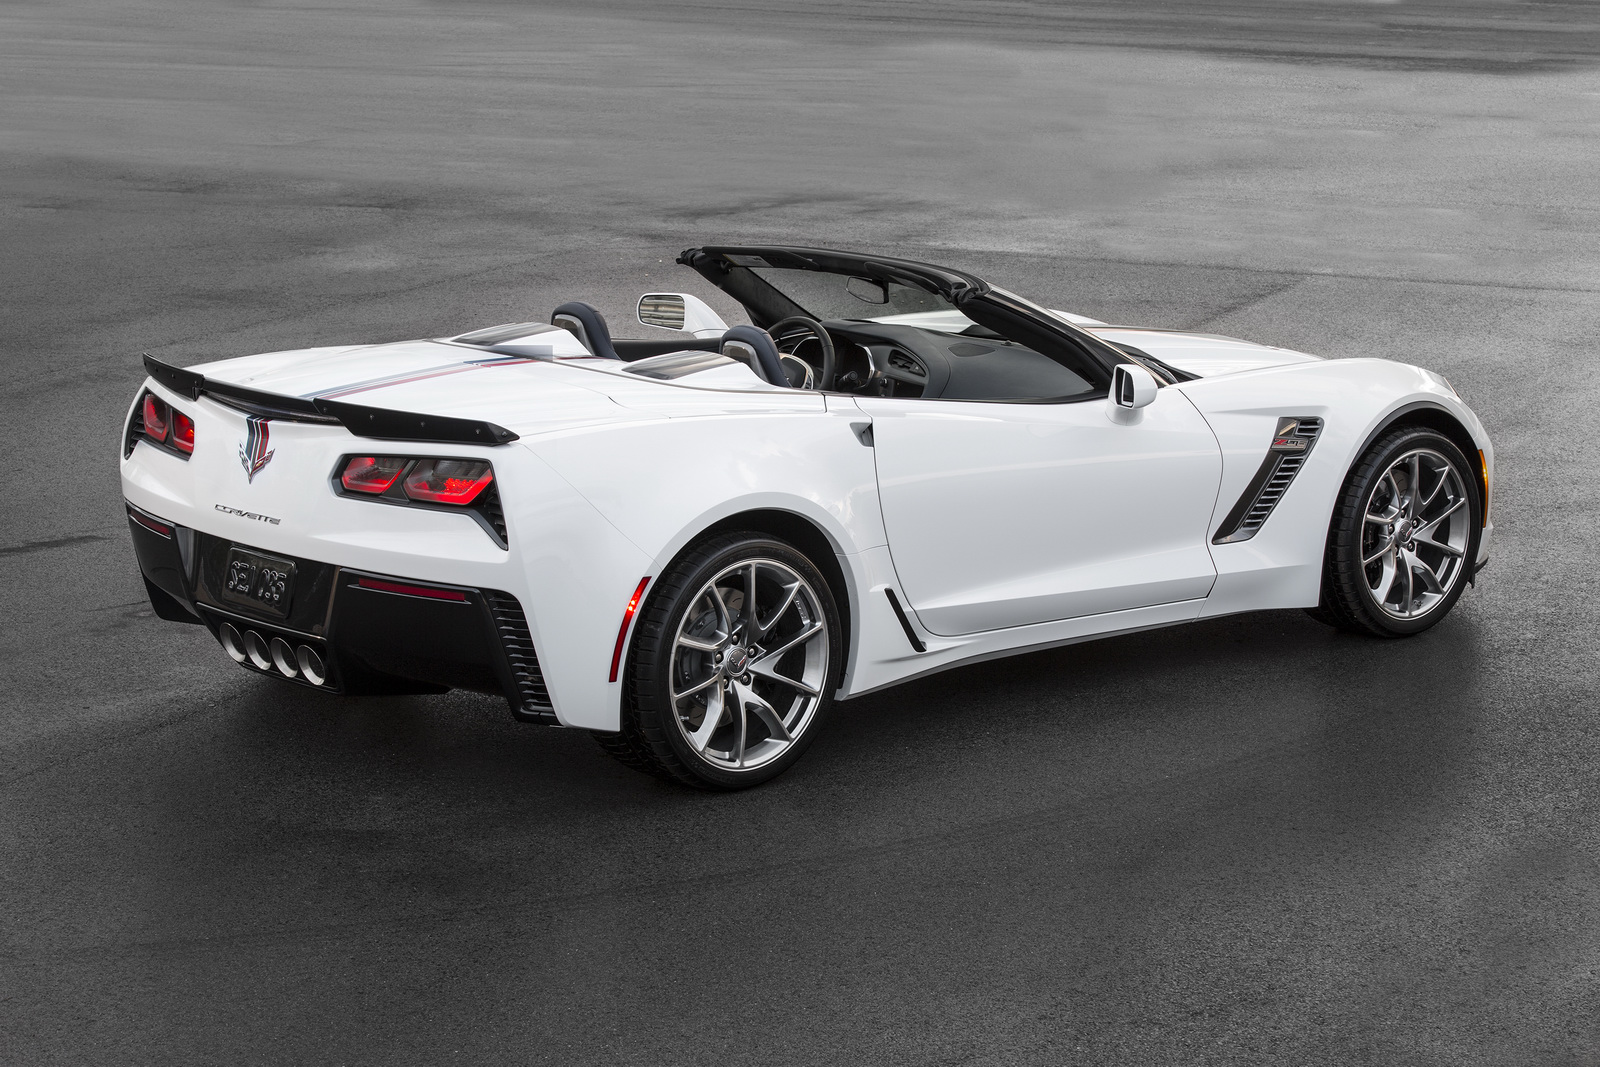 Where are we taking our boss's 2016 Chevrolet Corvette Convertible Z06??